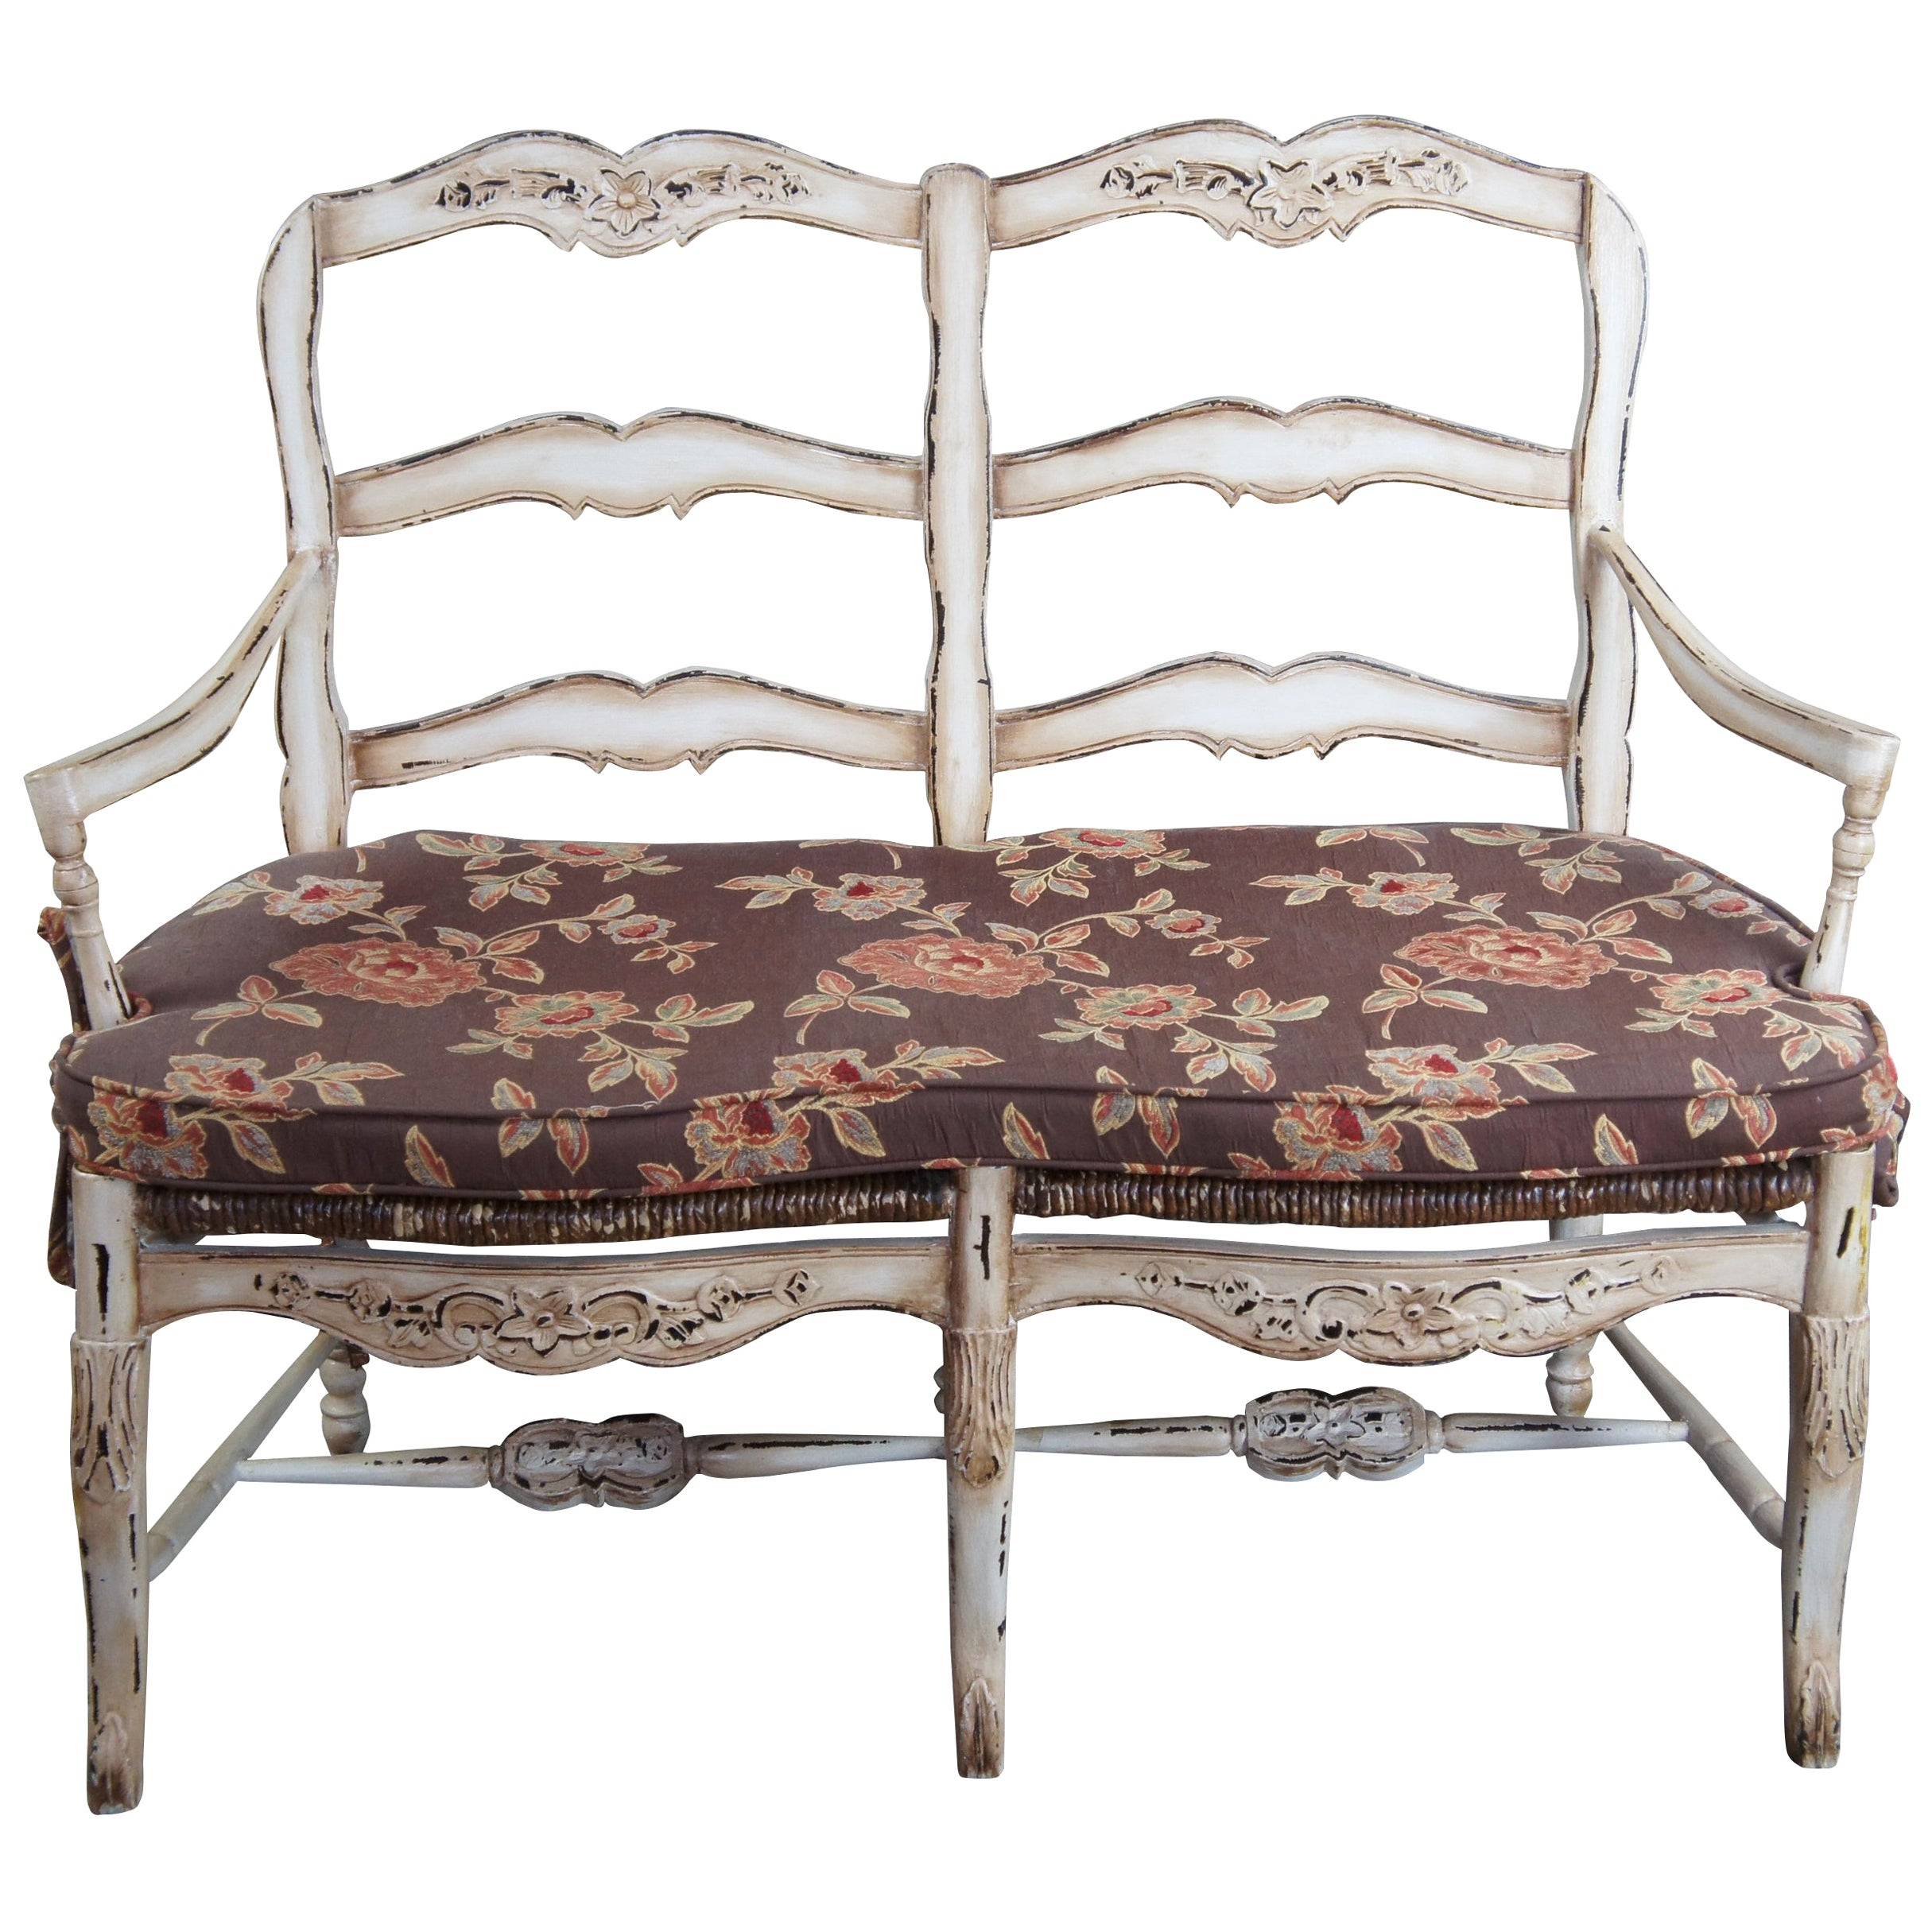 Vintage French Country Chic 2 Seater Ladderback Settee Rush Seat & Cushion